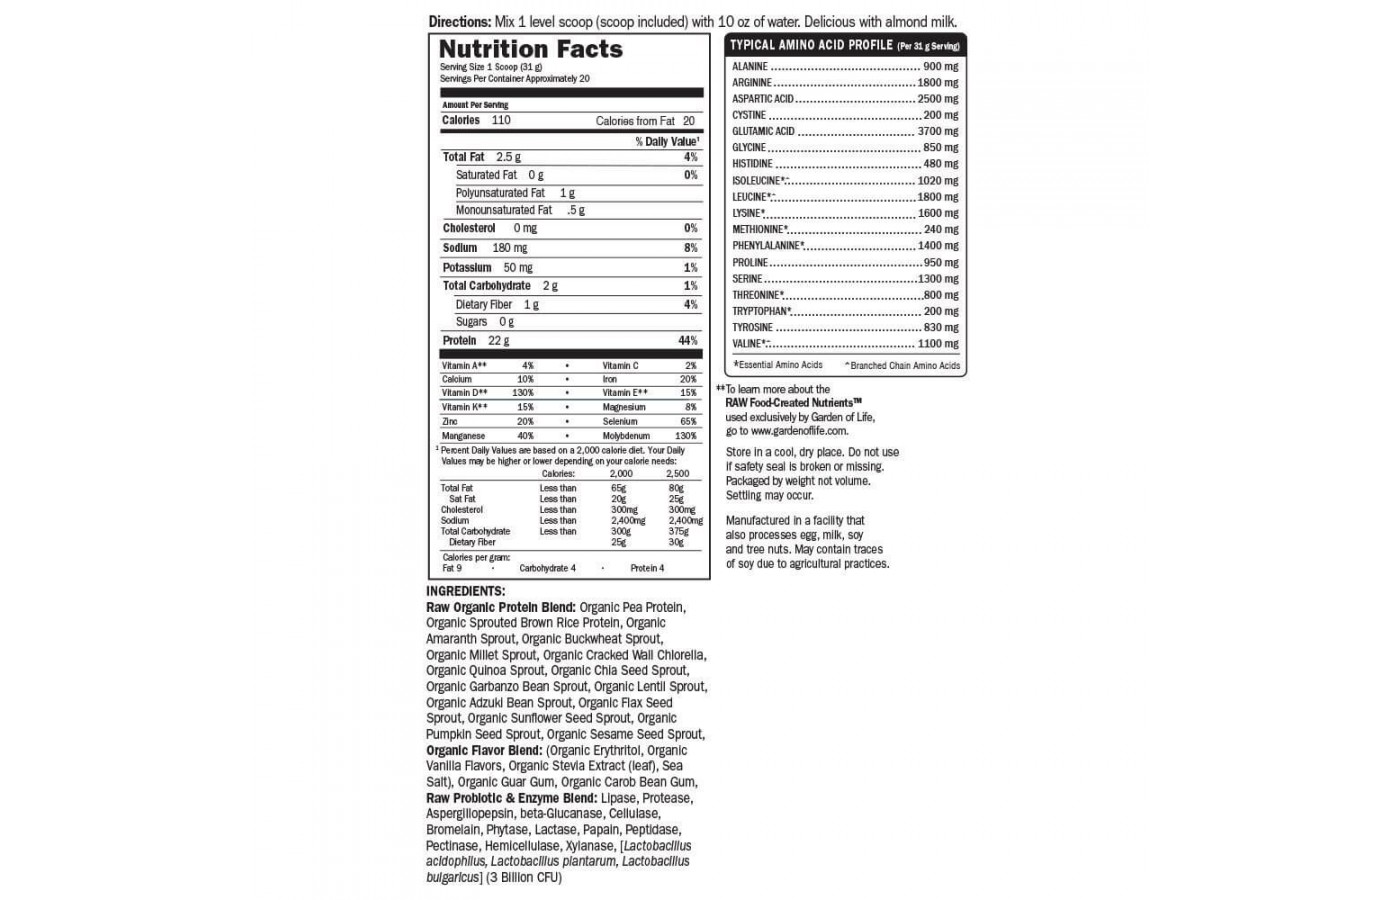 Garden of Life Nutrition Facts